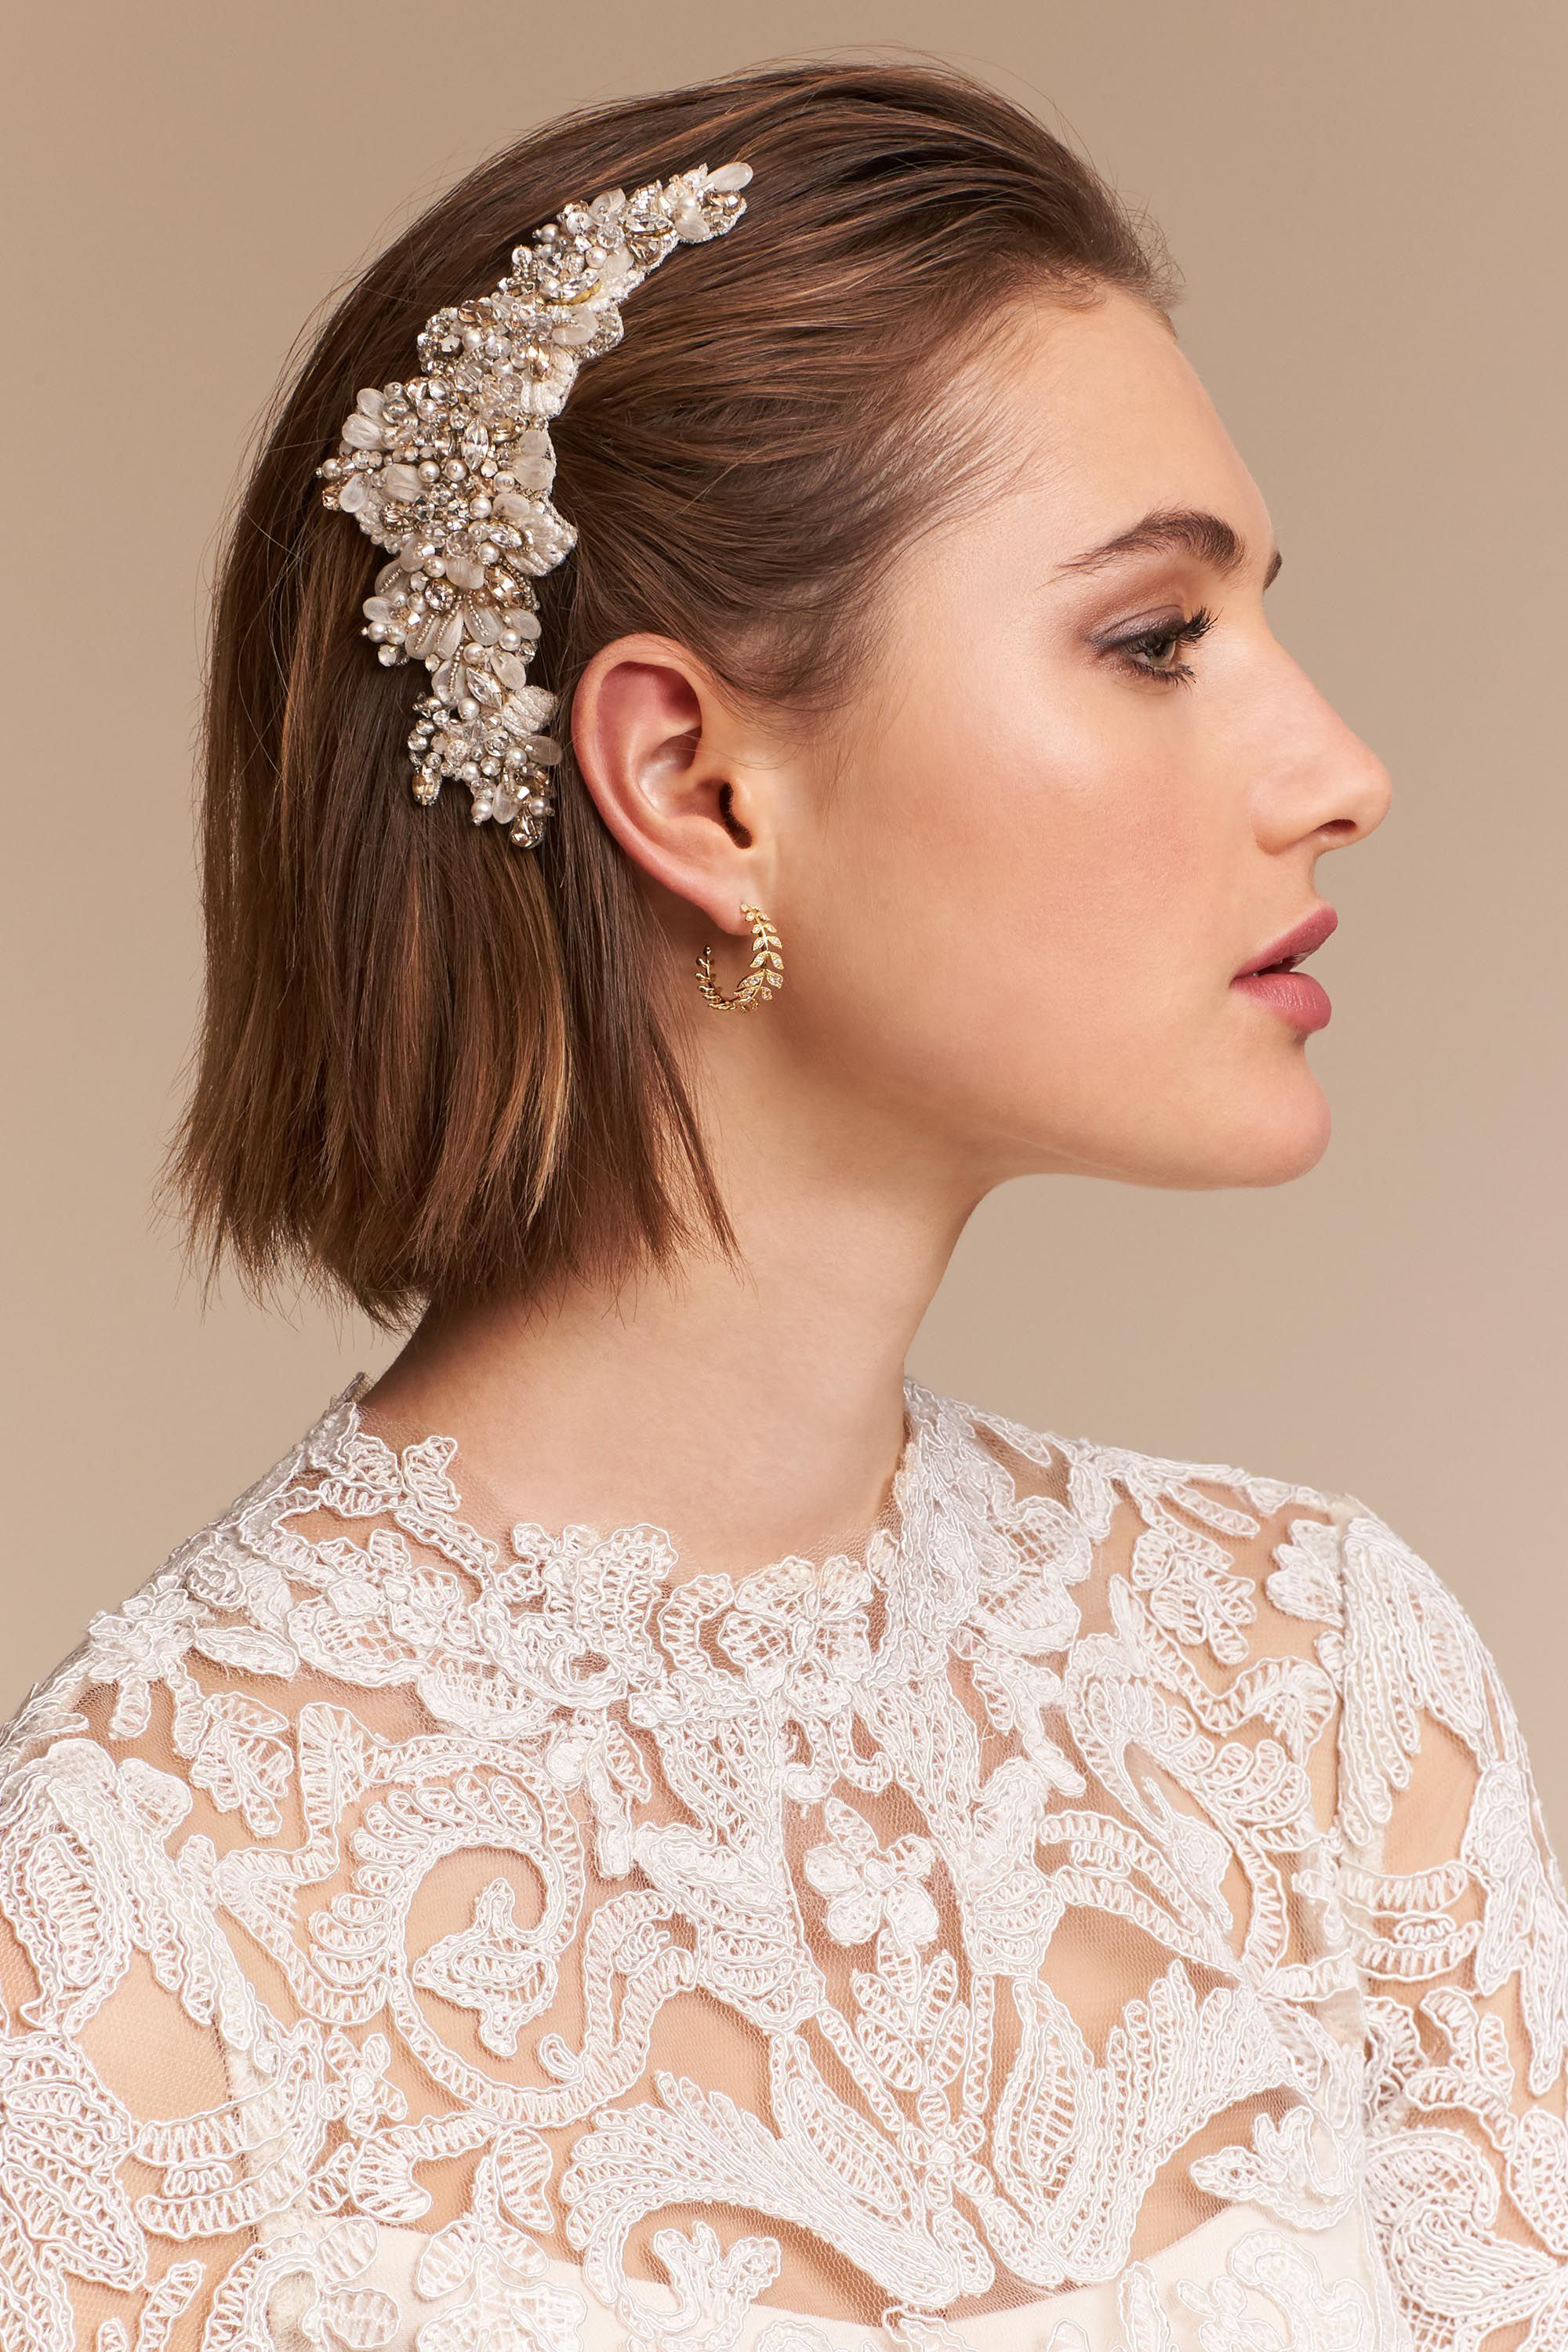 lizie comb from @bhldn | accessorize wedding style | wedding